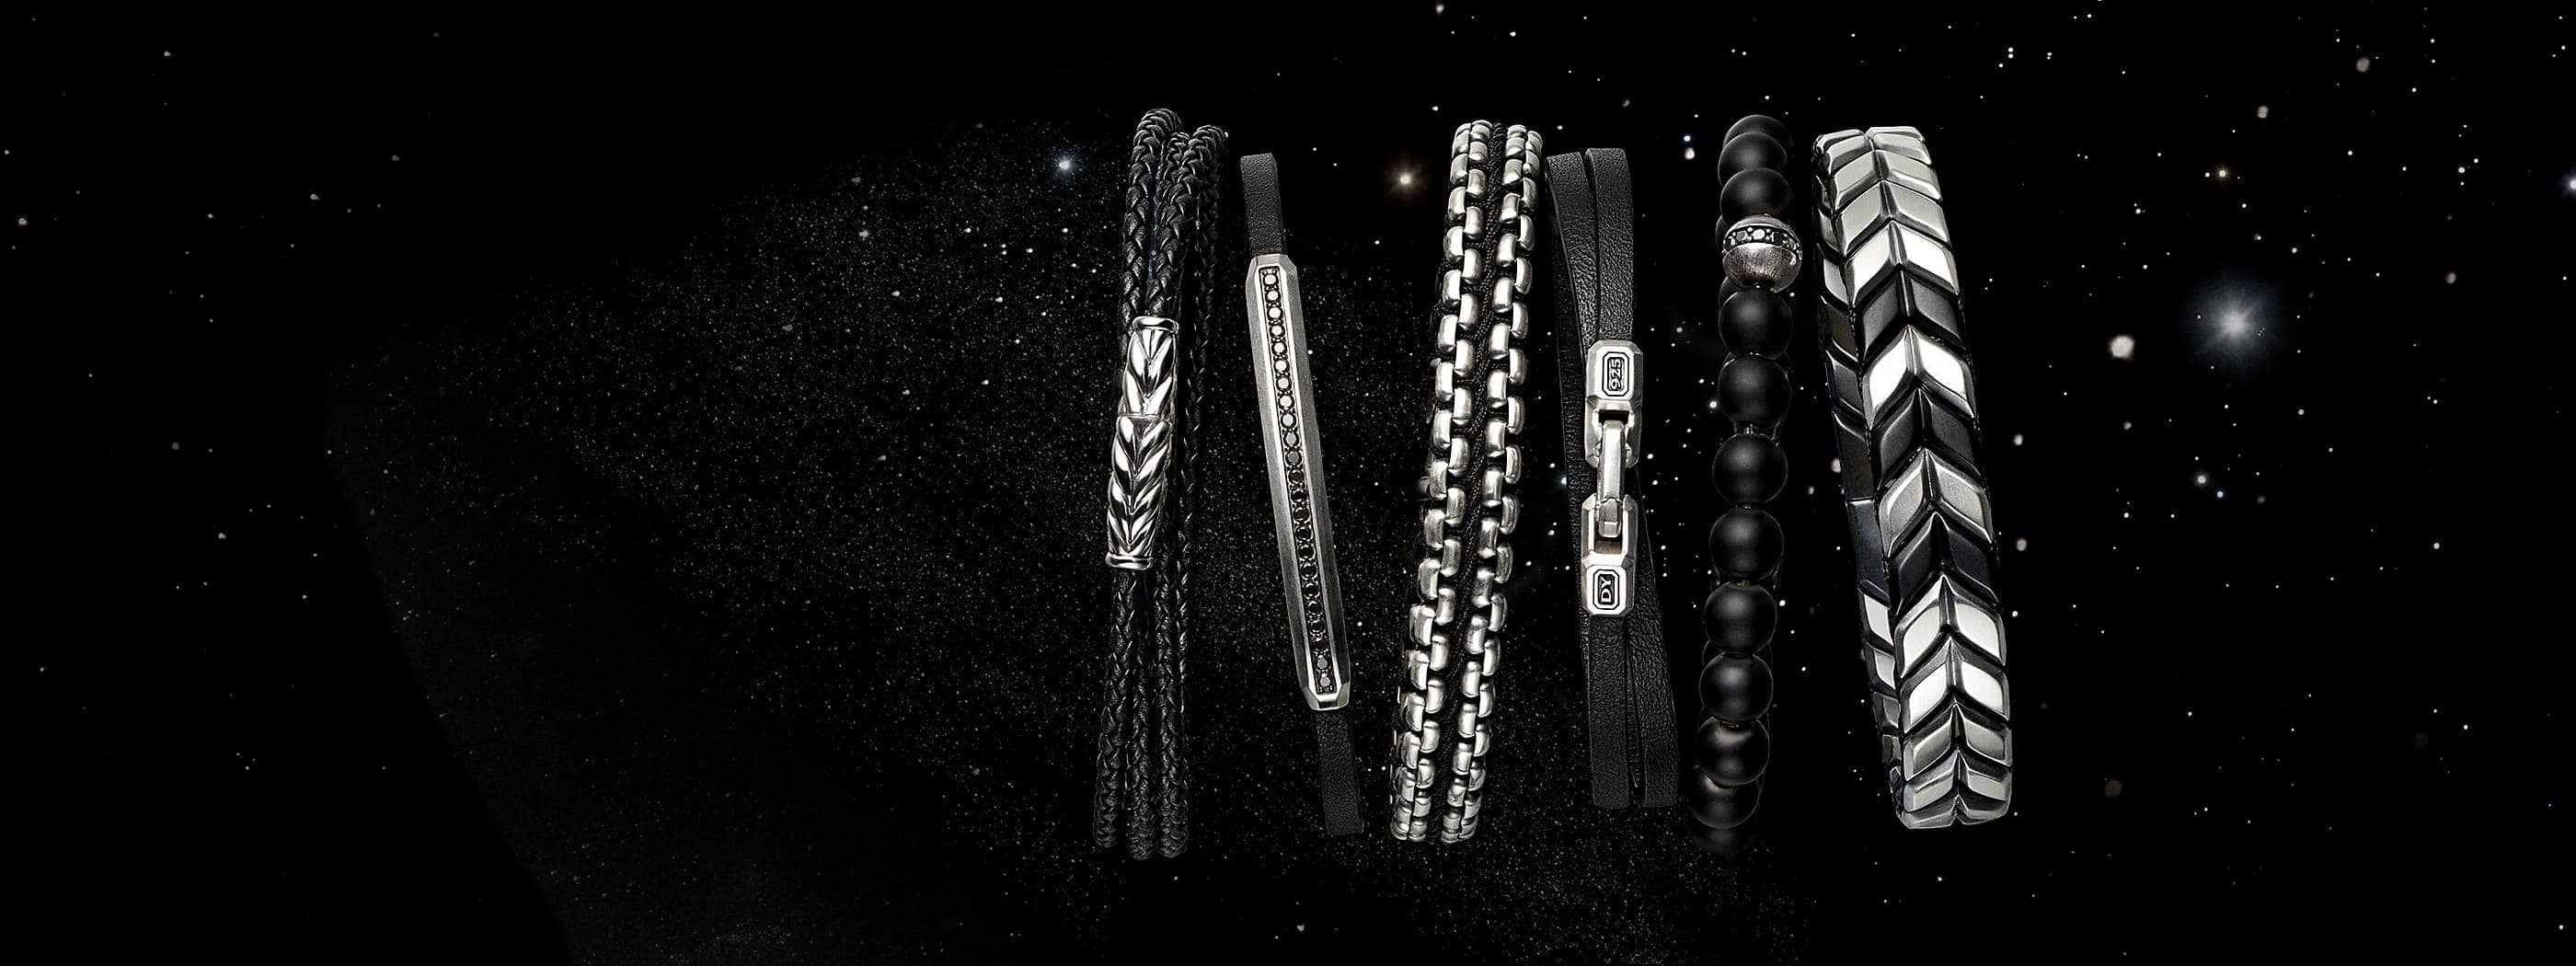 A color photograph shows a horizontal row of six David Yurman men's bracelets standing in front of a starry night sky. The jewelry is crafted with sterling silver. From left is a Chevron bracelet in sterling silver with braided black leather, a Pavé bracelet in sterling silver with smooth black leather and pavé black diamonds, a Chain bracelet in sterling silver with woven black nylon, a Streamline bracelet with sterling silver and smooth black leather, a Spiritual Beads bracelet in black onyx with pavé black diamonds and a Chevron bracelet in sterling silver with black titanium.